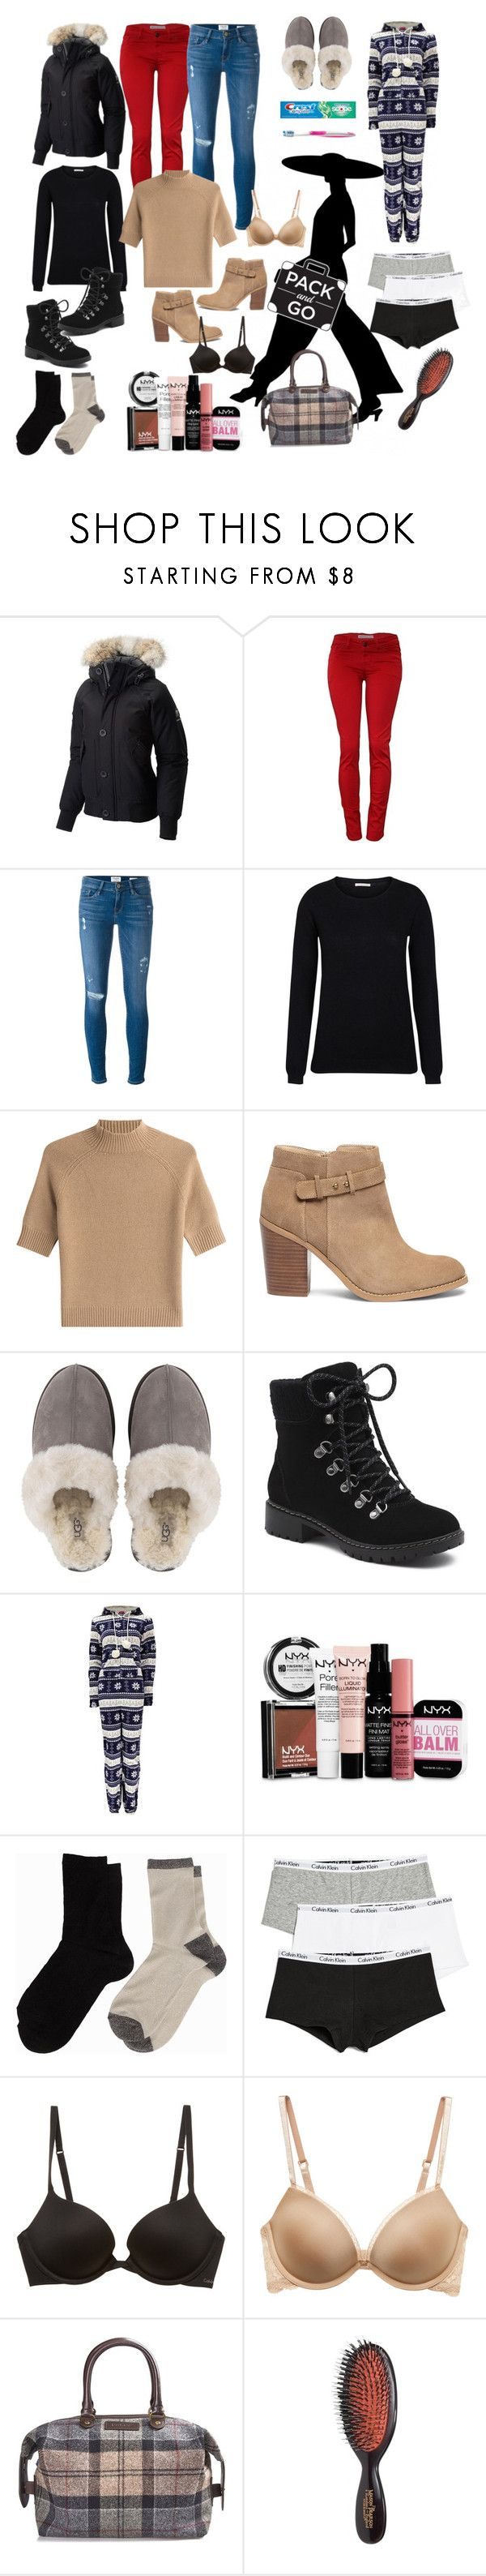 """Let's get outta here..,,"" by vettec ❤ liked on Polyvore featuring SOREL, Frame, Theory, Sole Society, UGG, G.H. Bass & Co., Boohoo, NYX, Oral-B and Pieces"